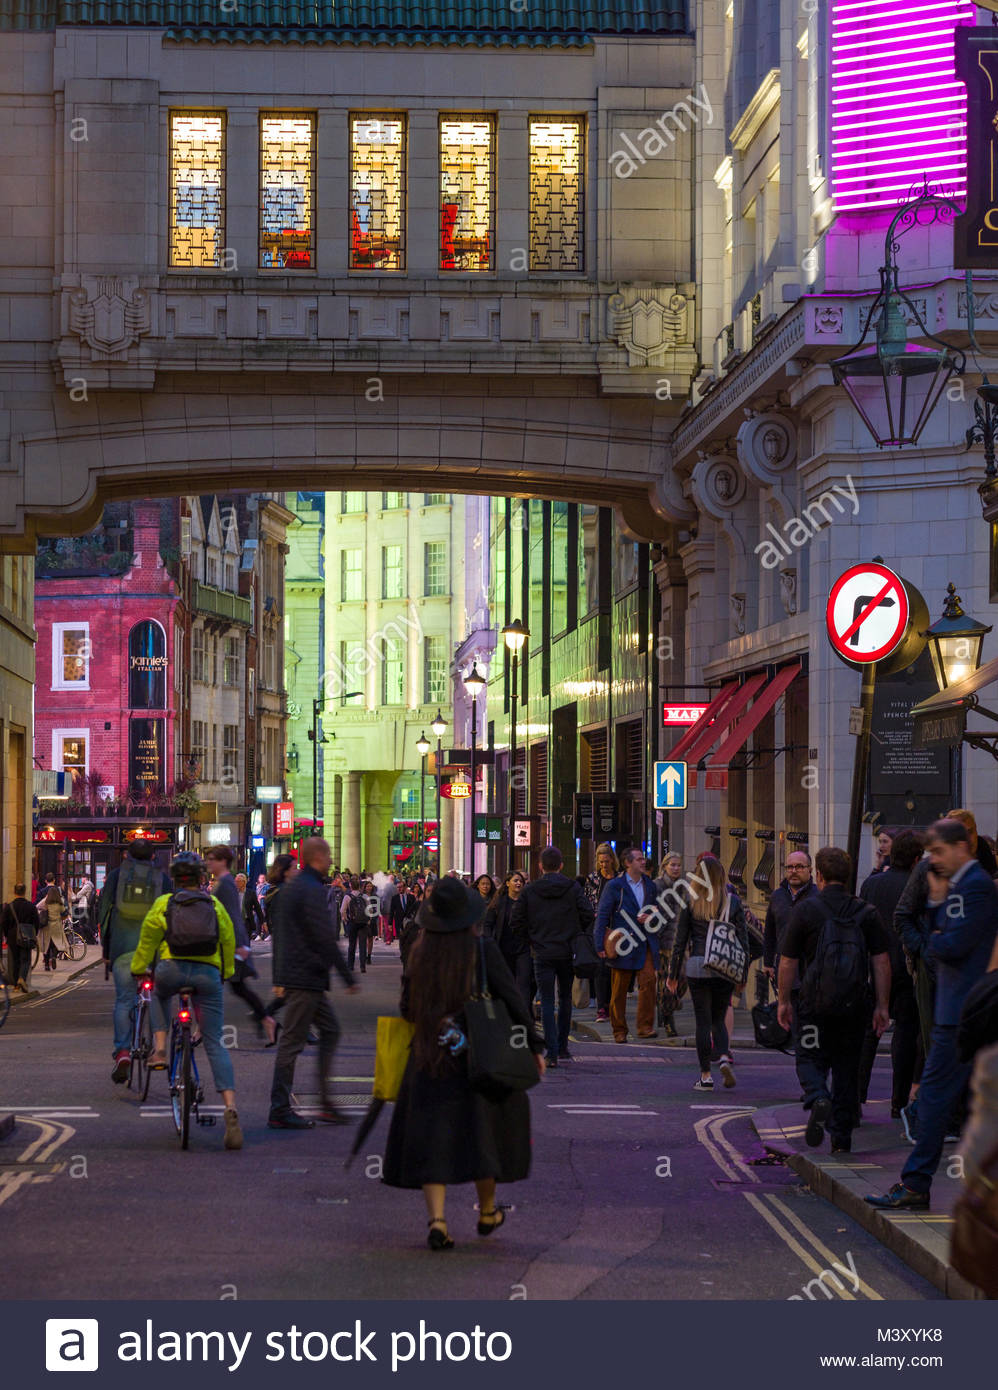 Pedestrian overpass over Sherwood Street at night, Soho, City of Westminster, London, England, United Kingdom - Stock Image